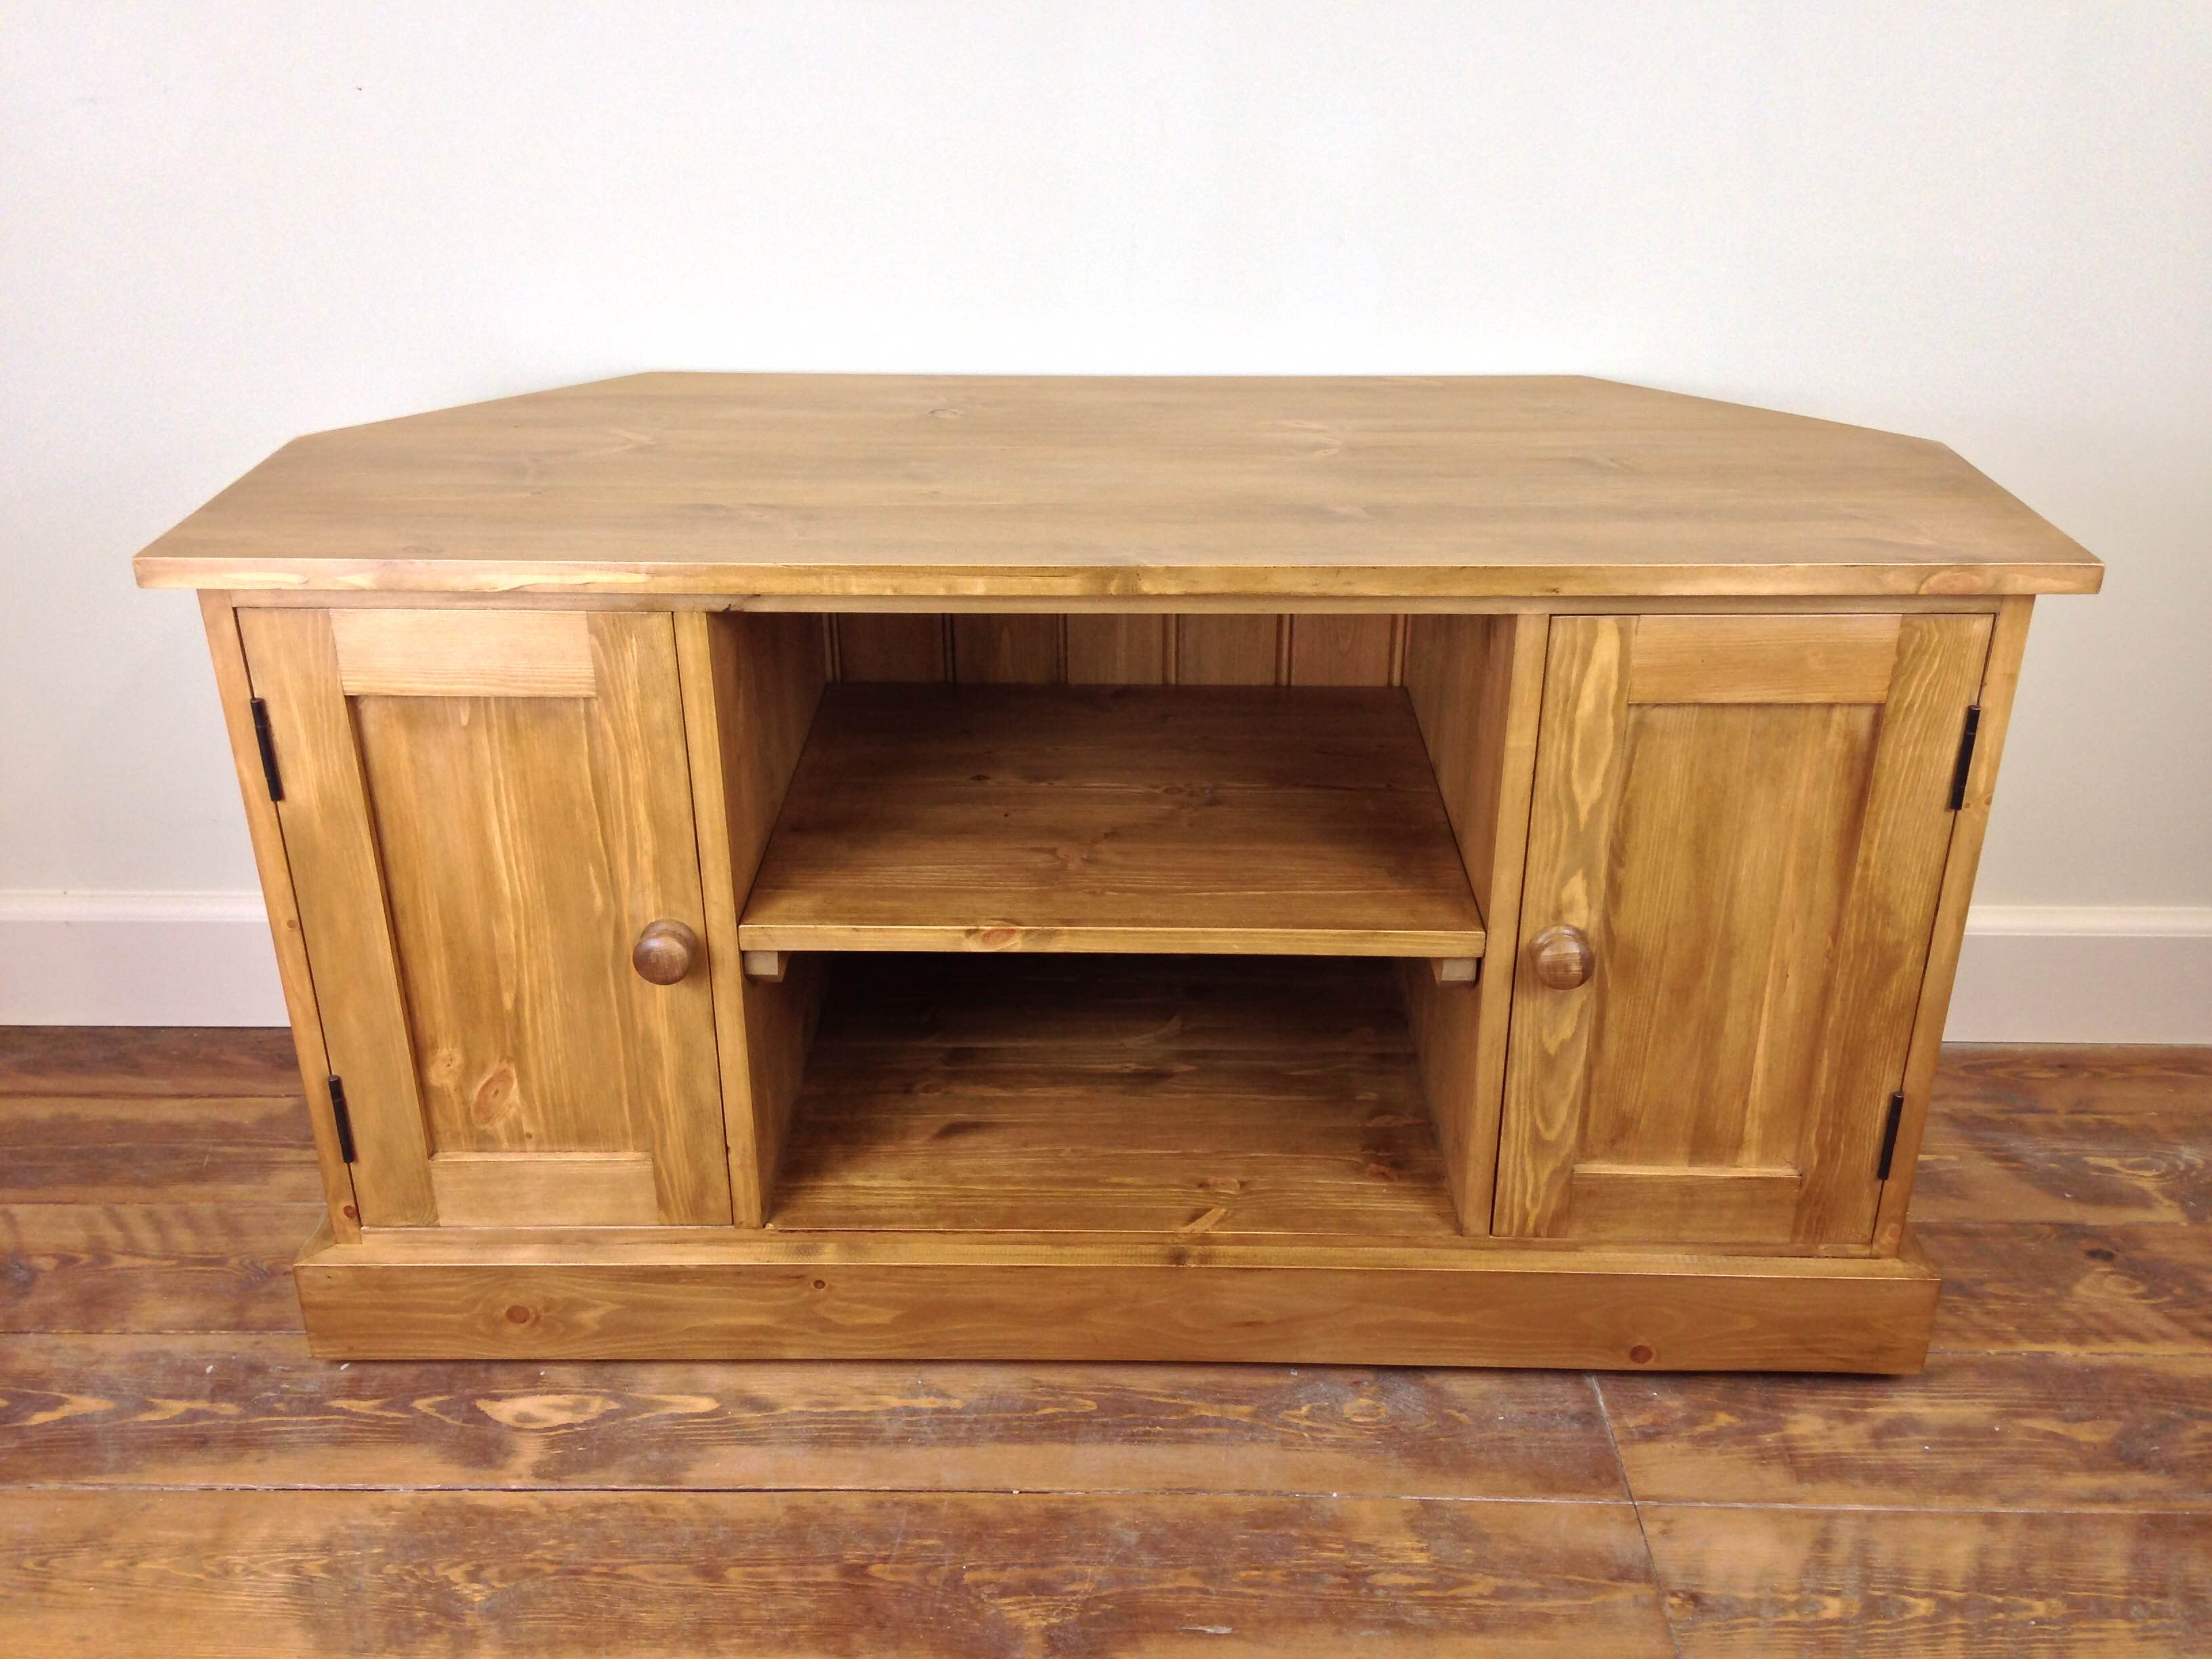 Wolds Furniture Company